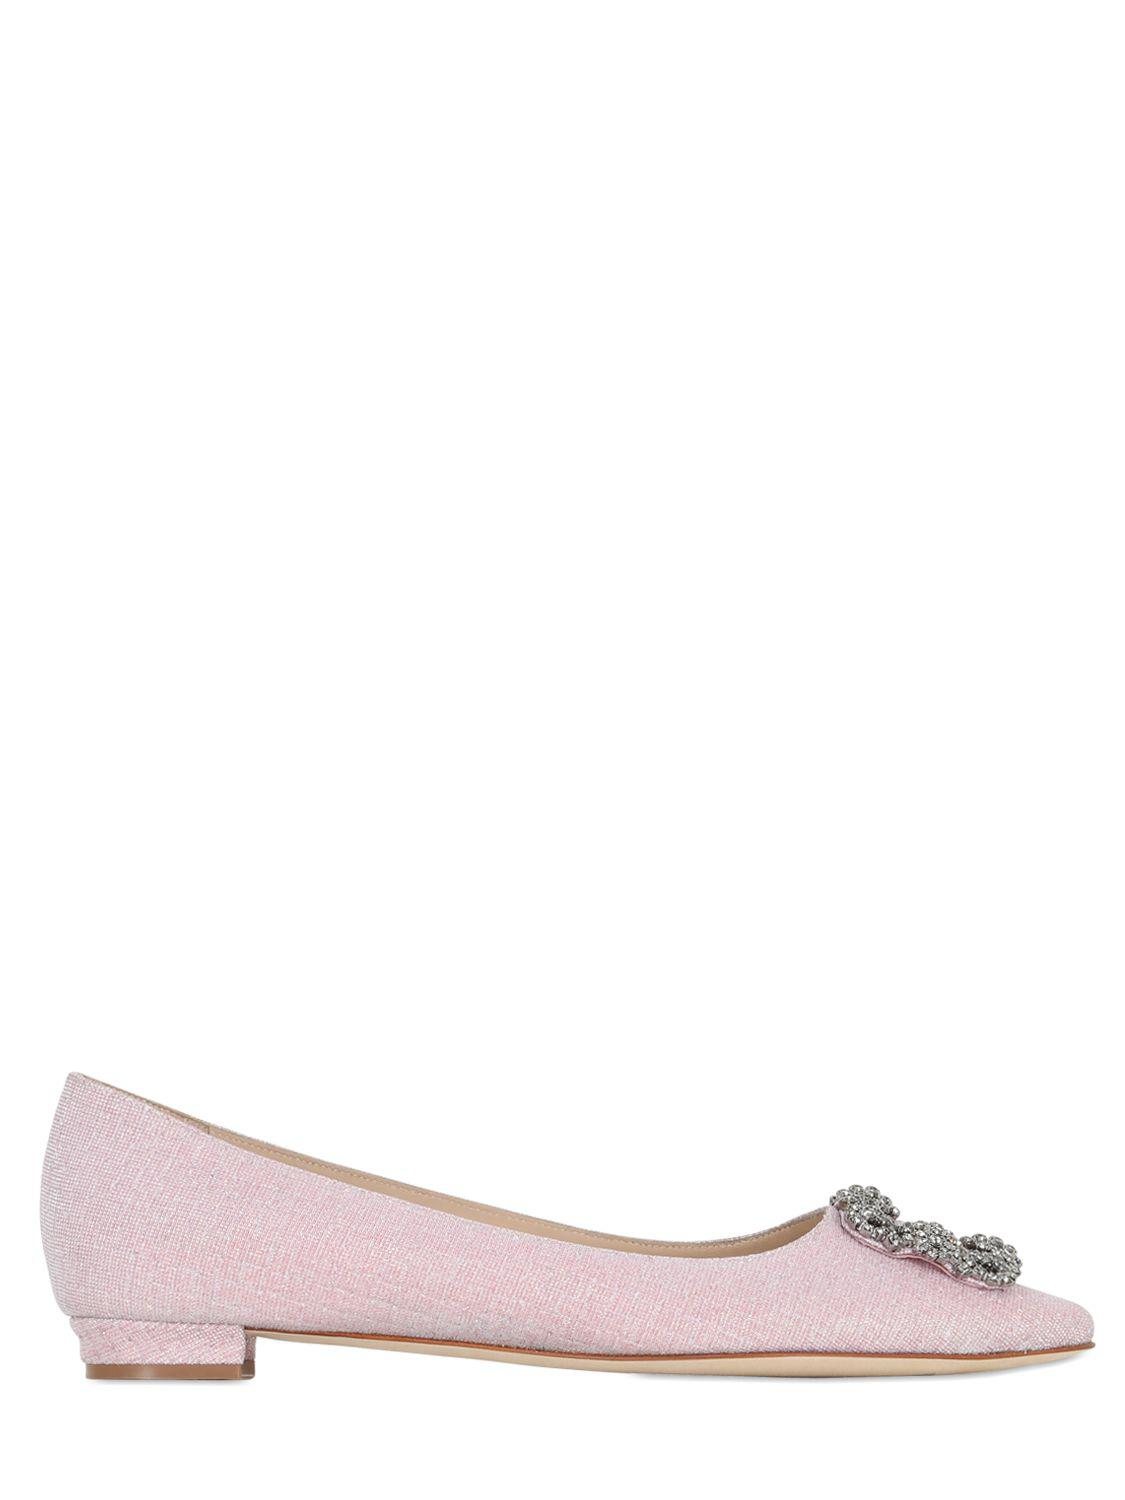 Exclusive Sale Manolo Blahnik 10mm Hangisi Notturno Lurex Flats Women Shoes Pink